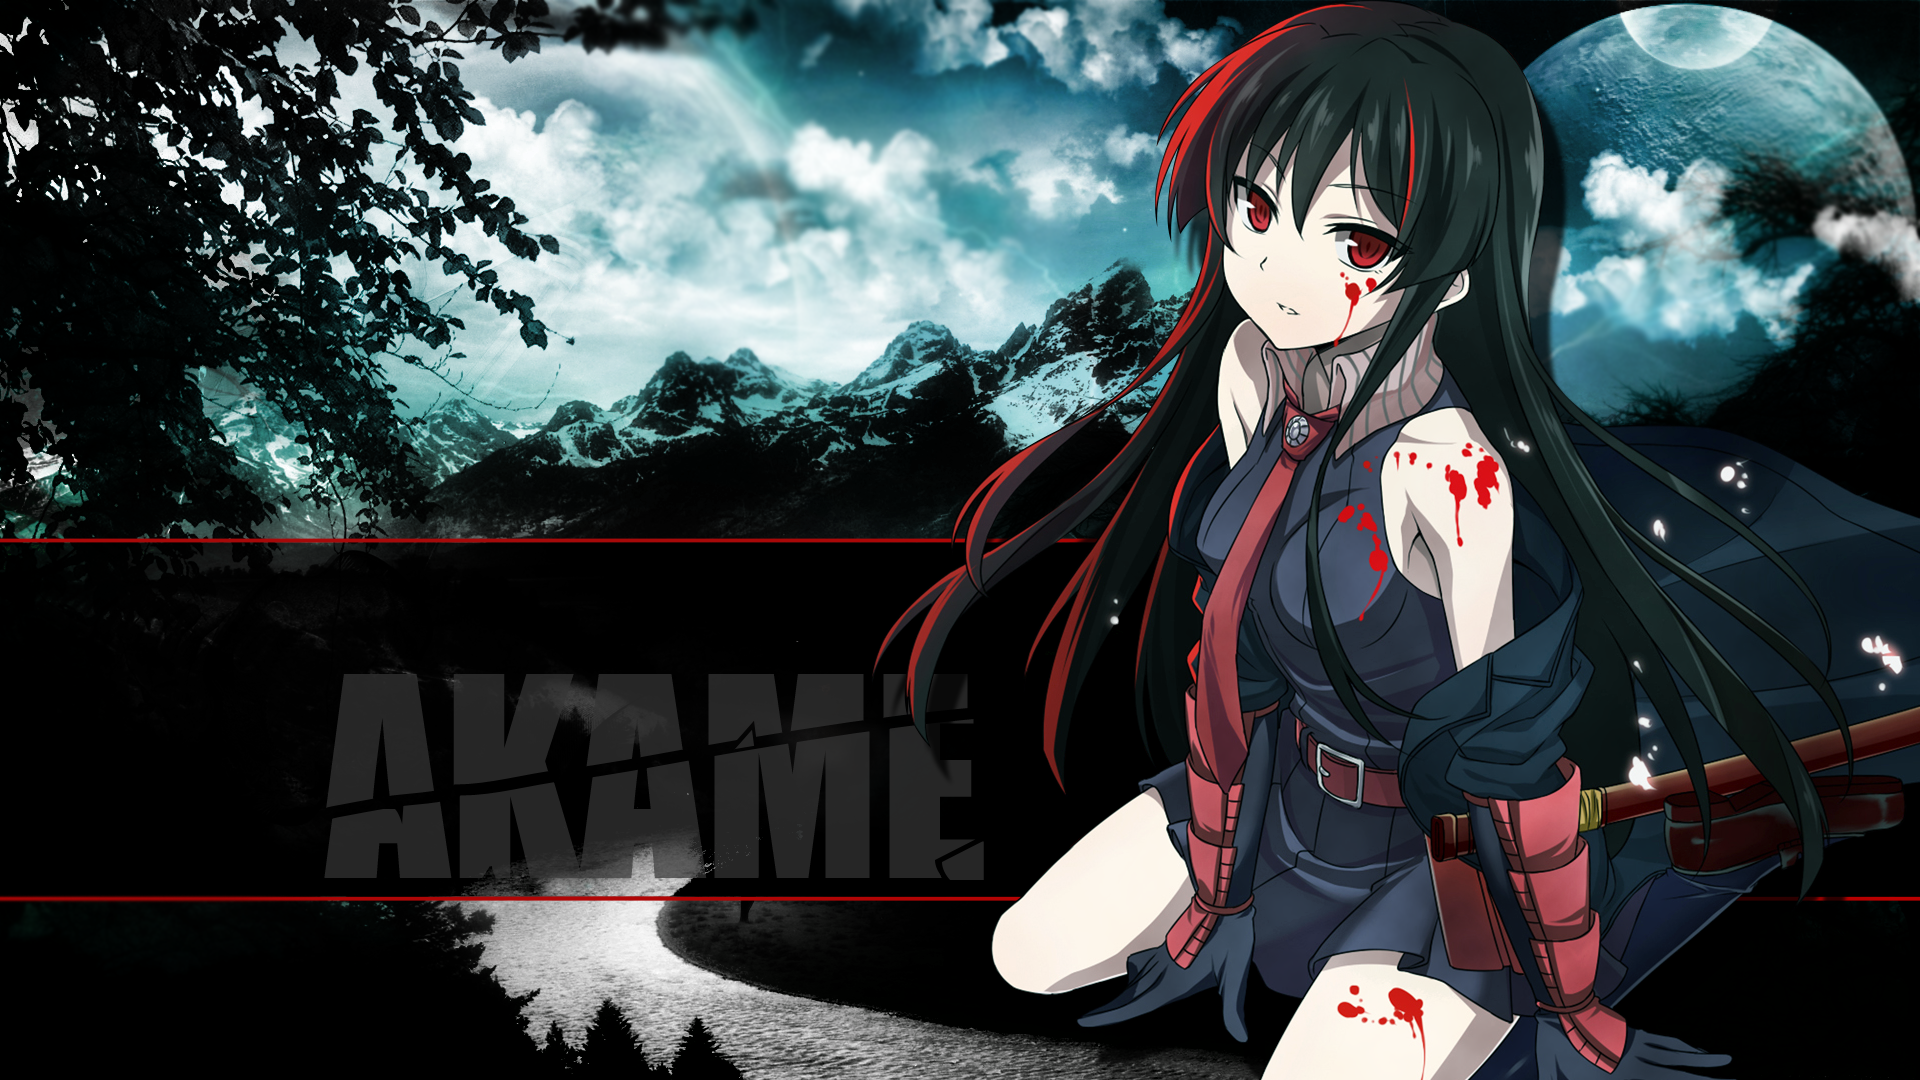 Anime Wallpapers Akame Ga Kill HD 4K Download For Mobile iPhone & PC